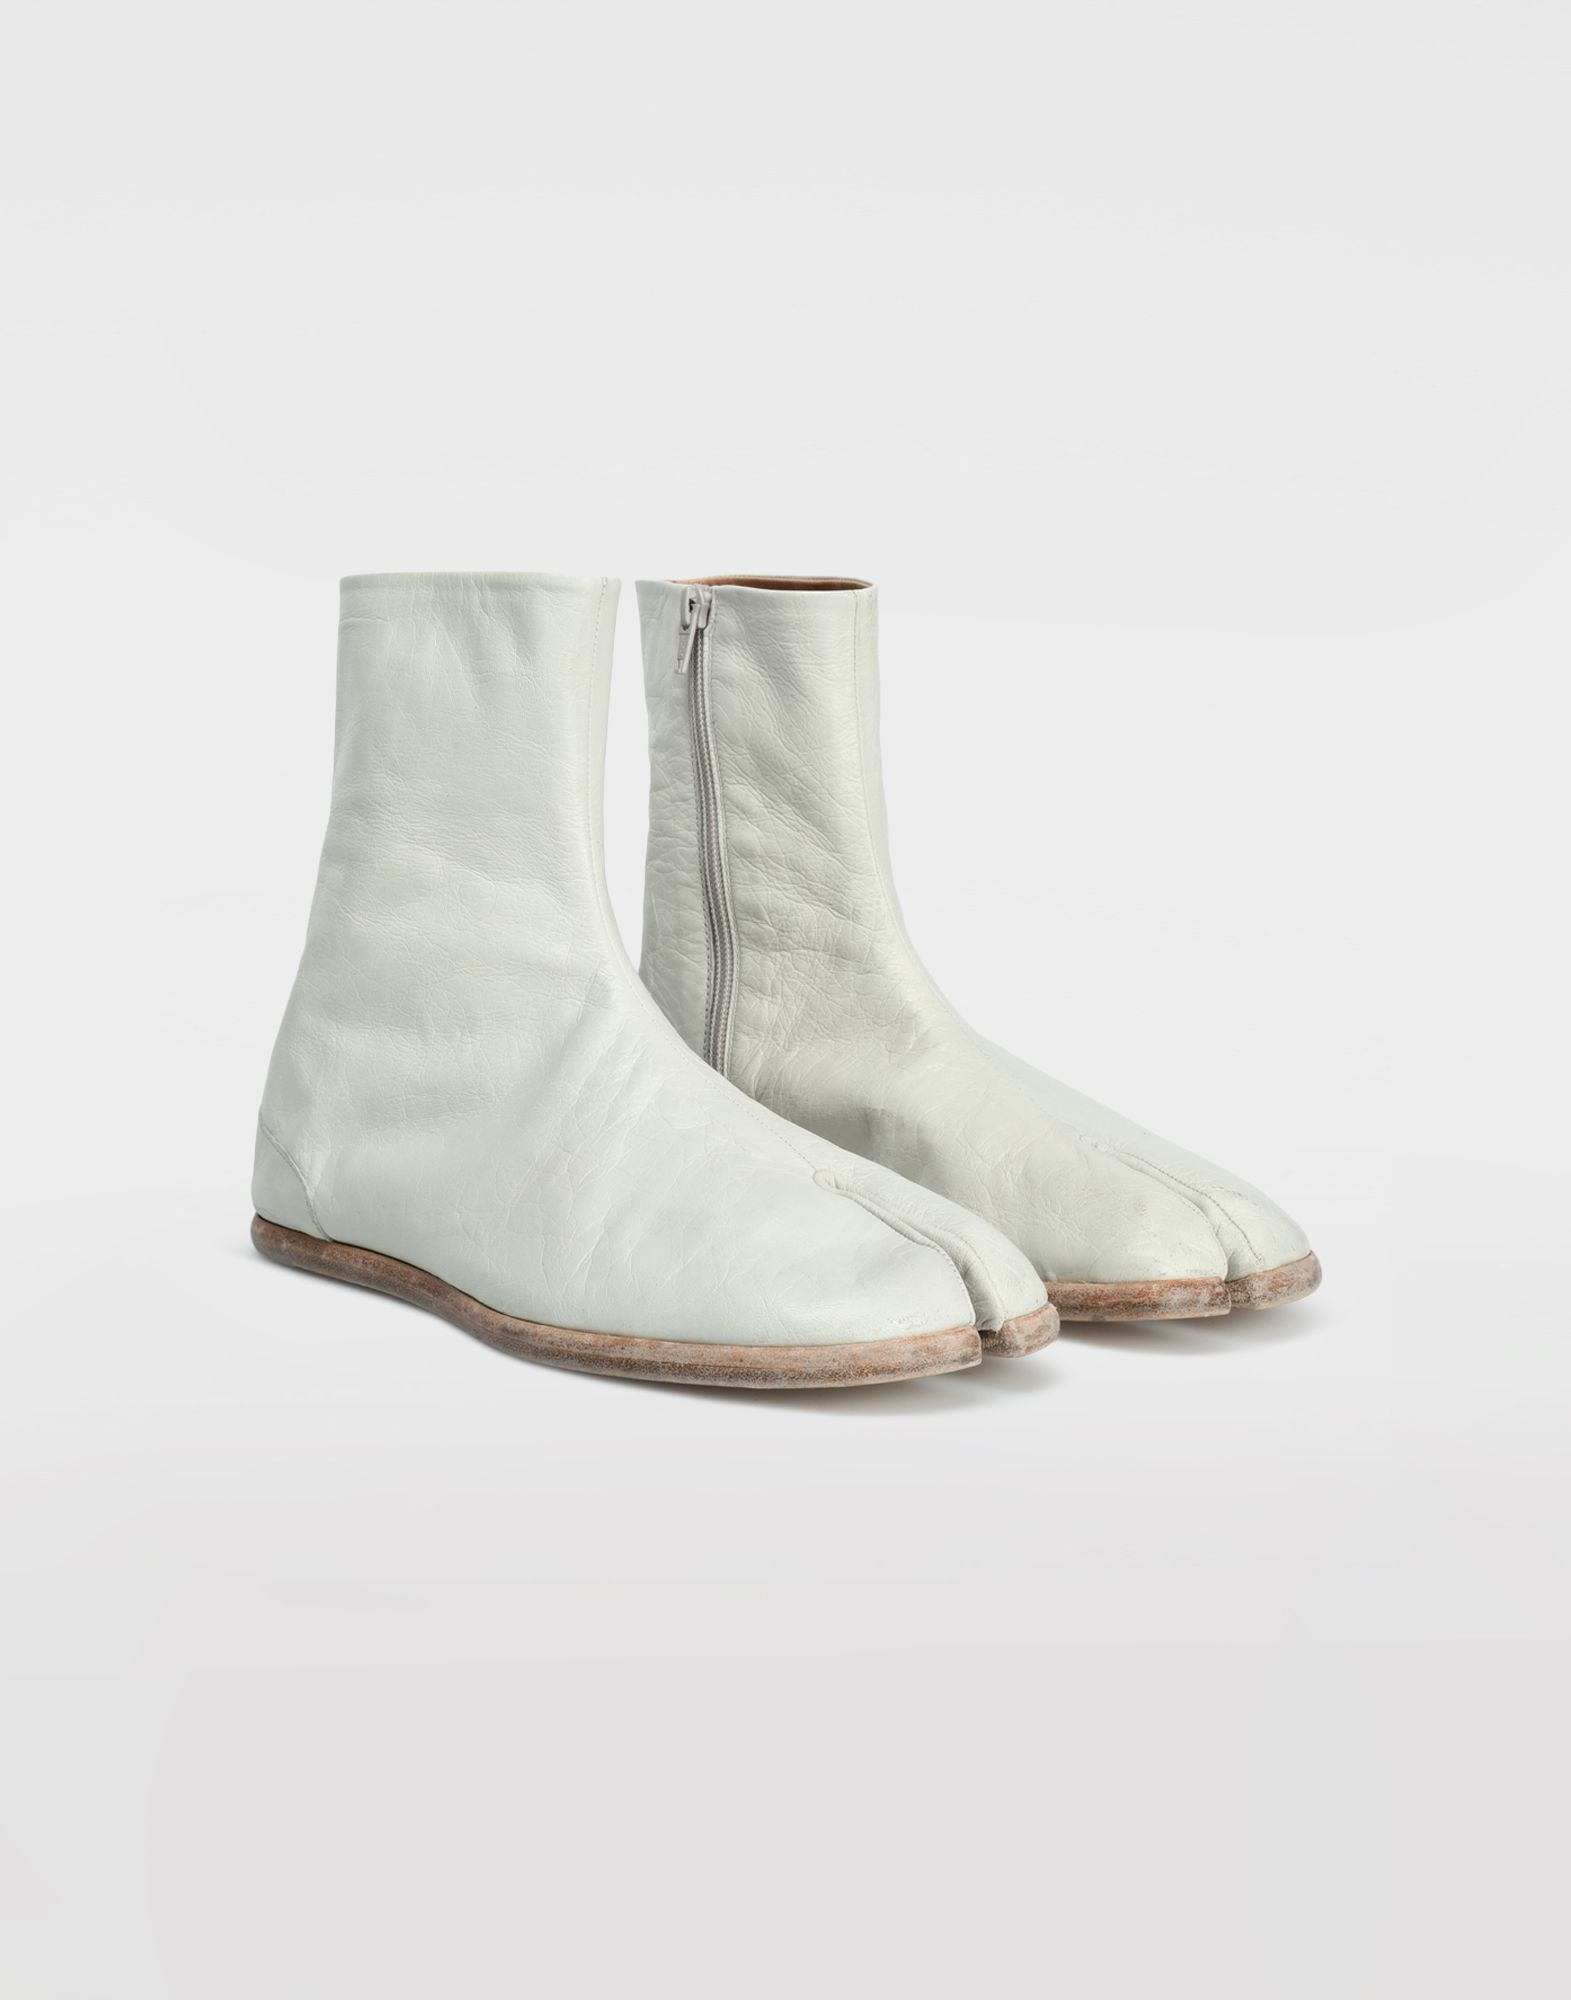 MAISON MARGIELA Tabi ankle boots Tabi boots & Ankle boots Man d